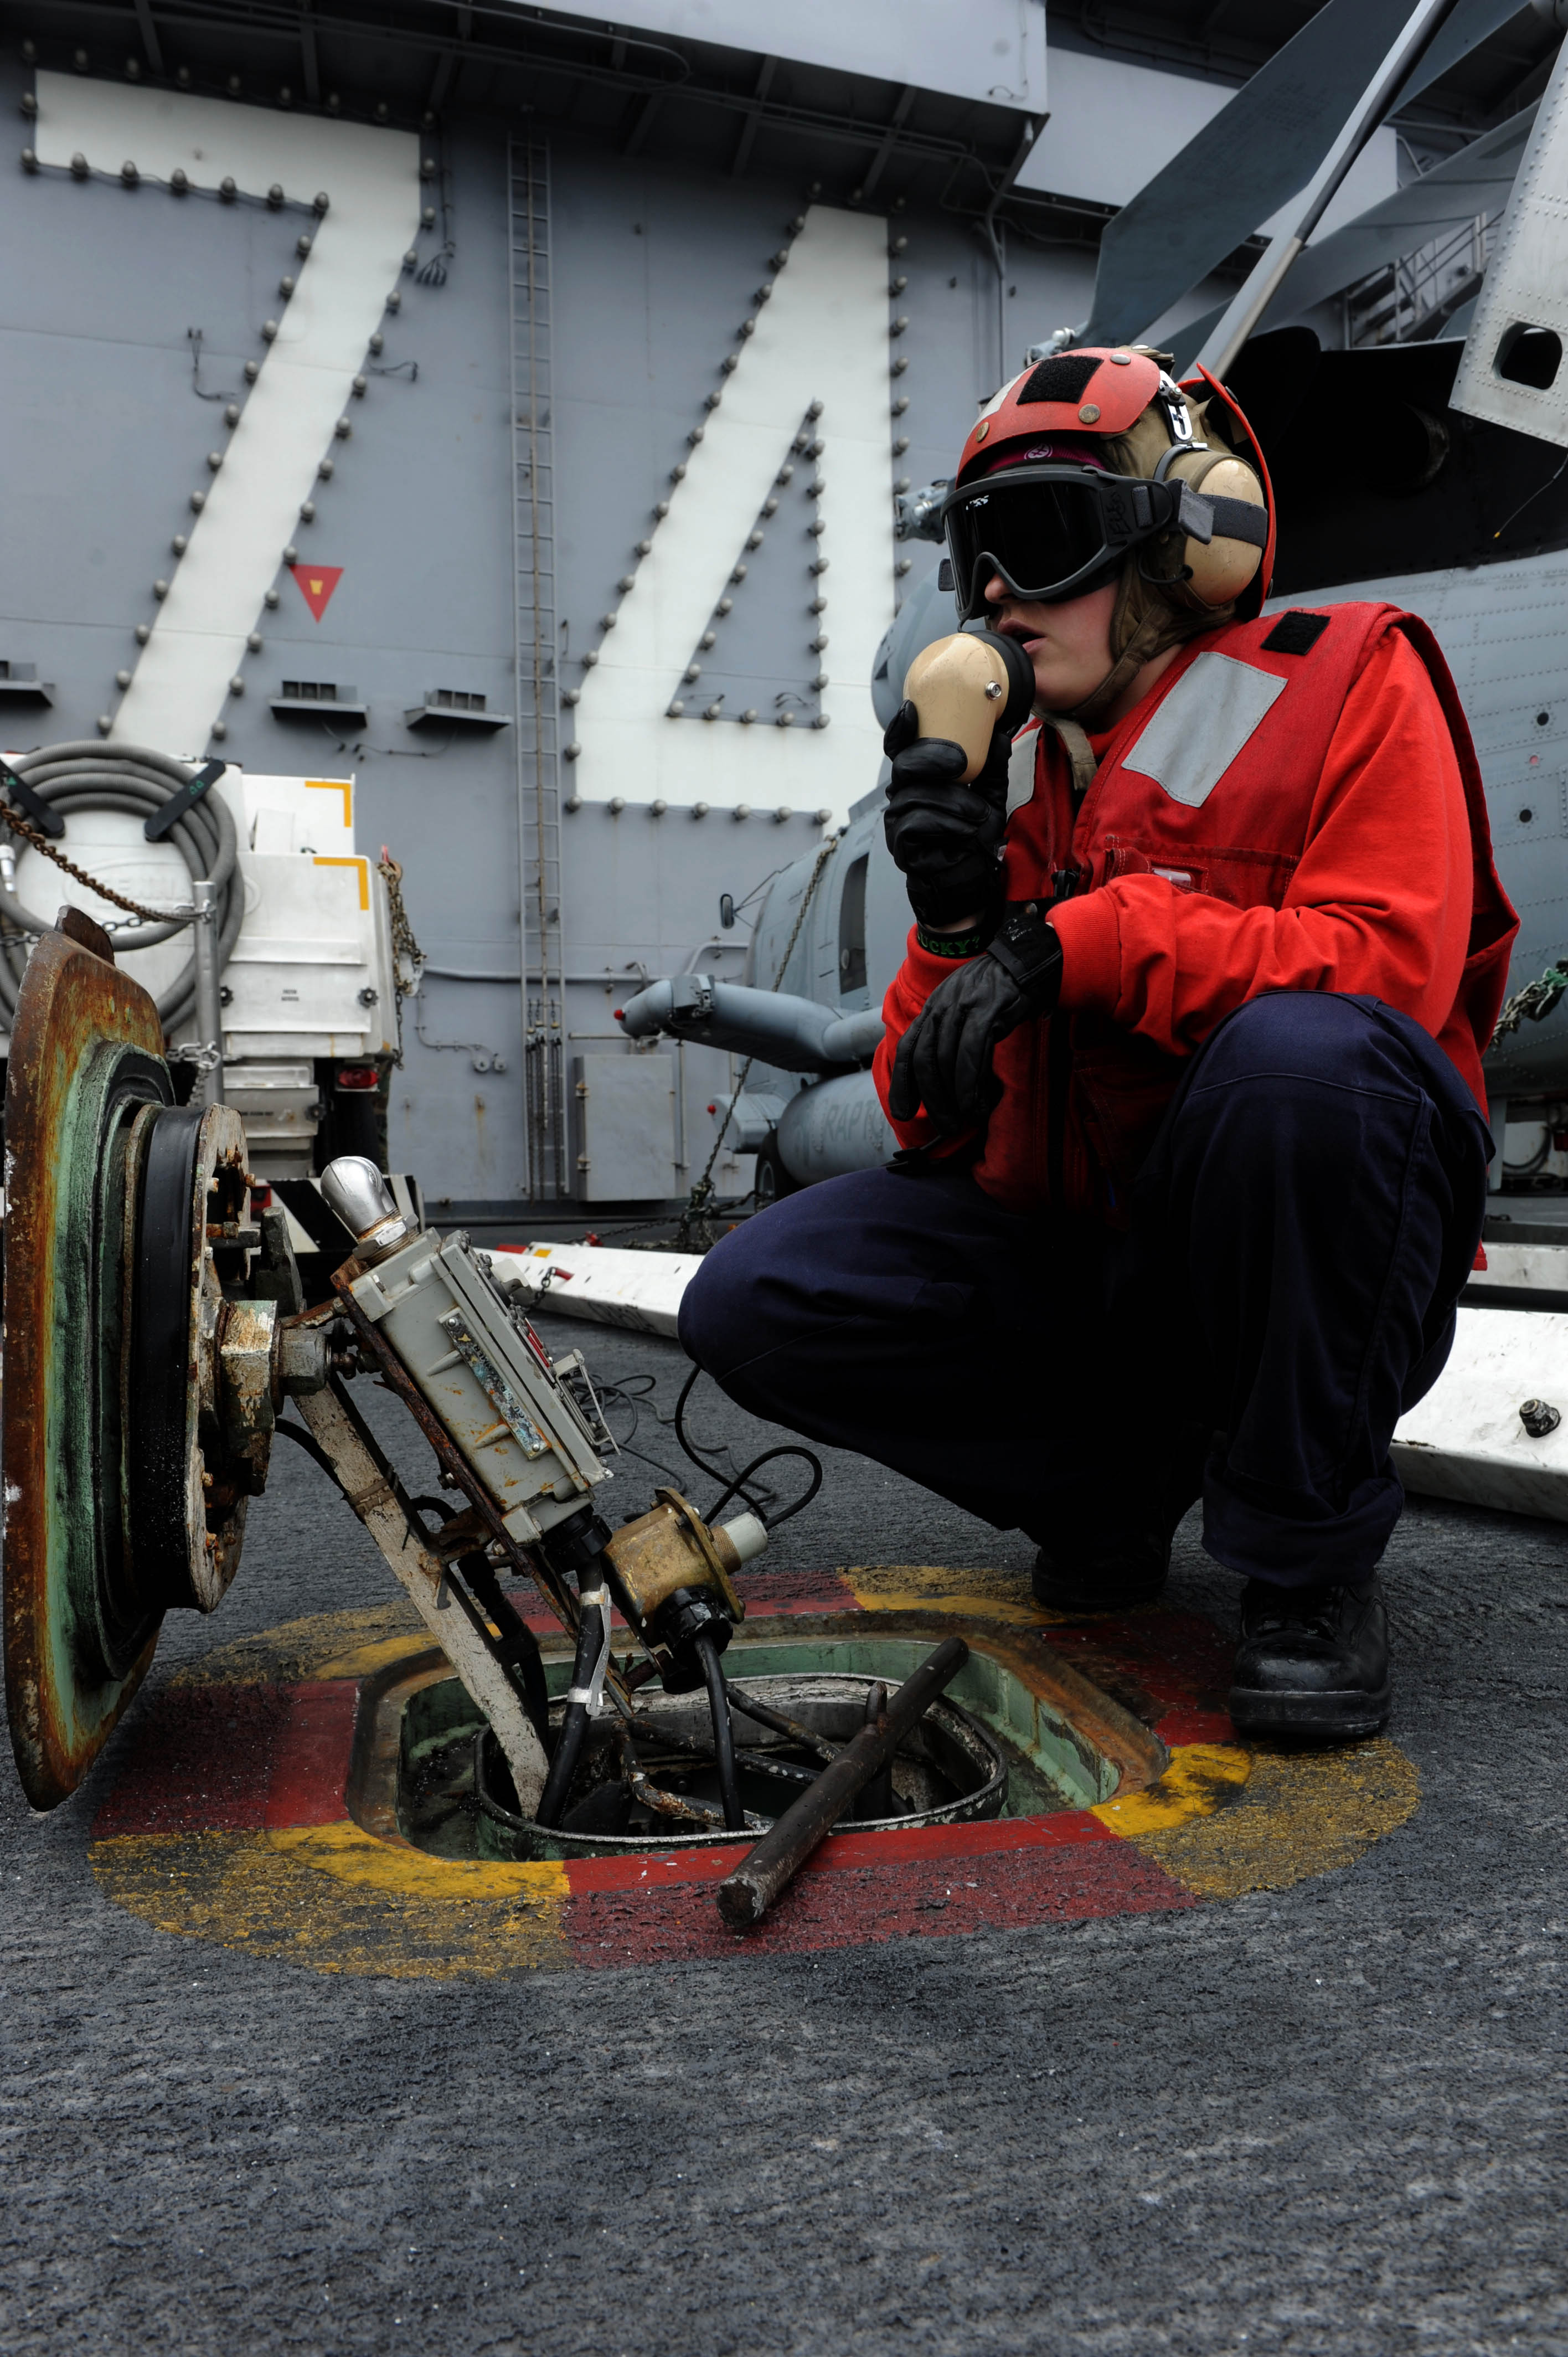 on the flight deck aboard the Nimitz-class aircraft carrier USS John C. Stennis (CVN 74). John C. Stennis is participating in a composite training unit